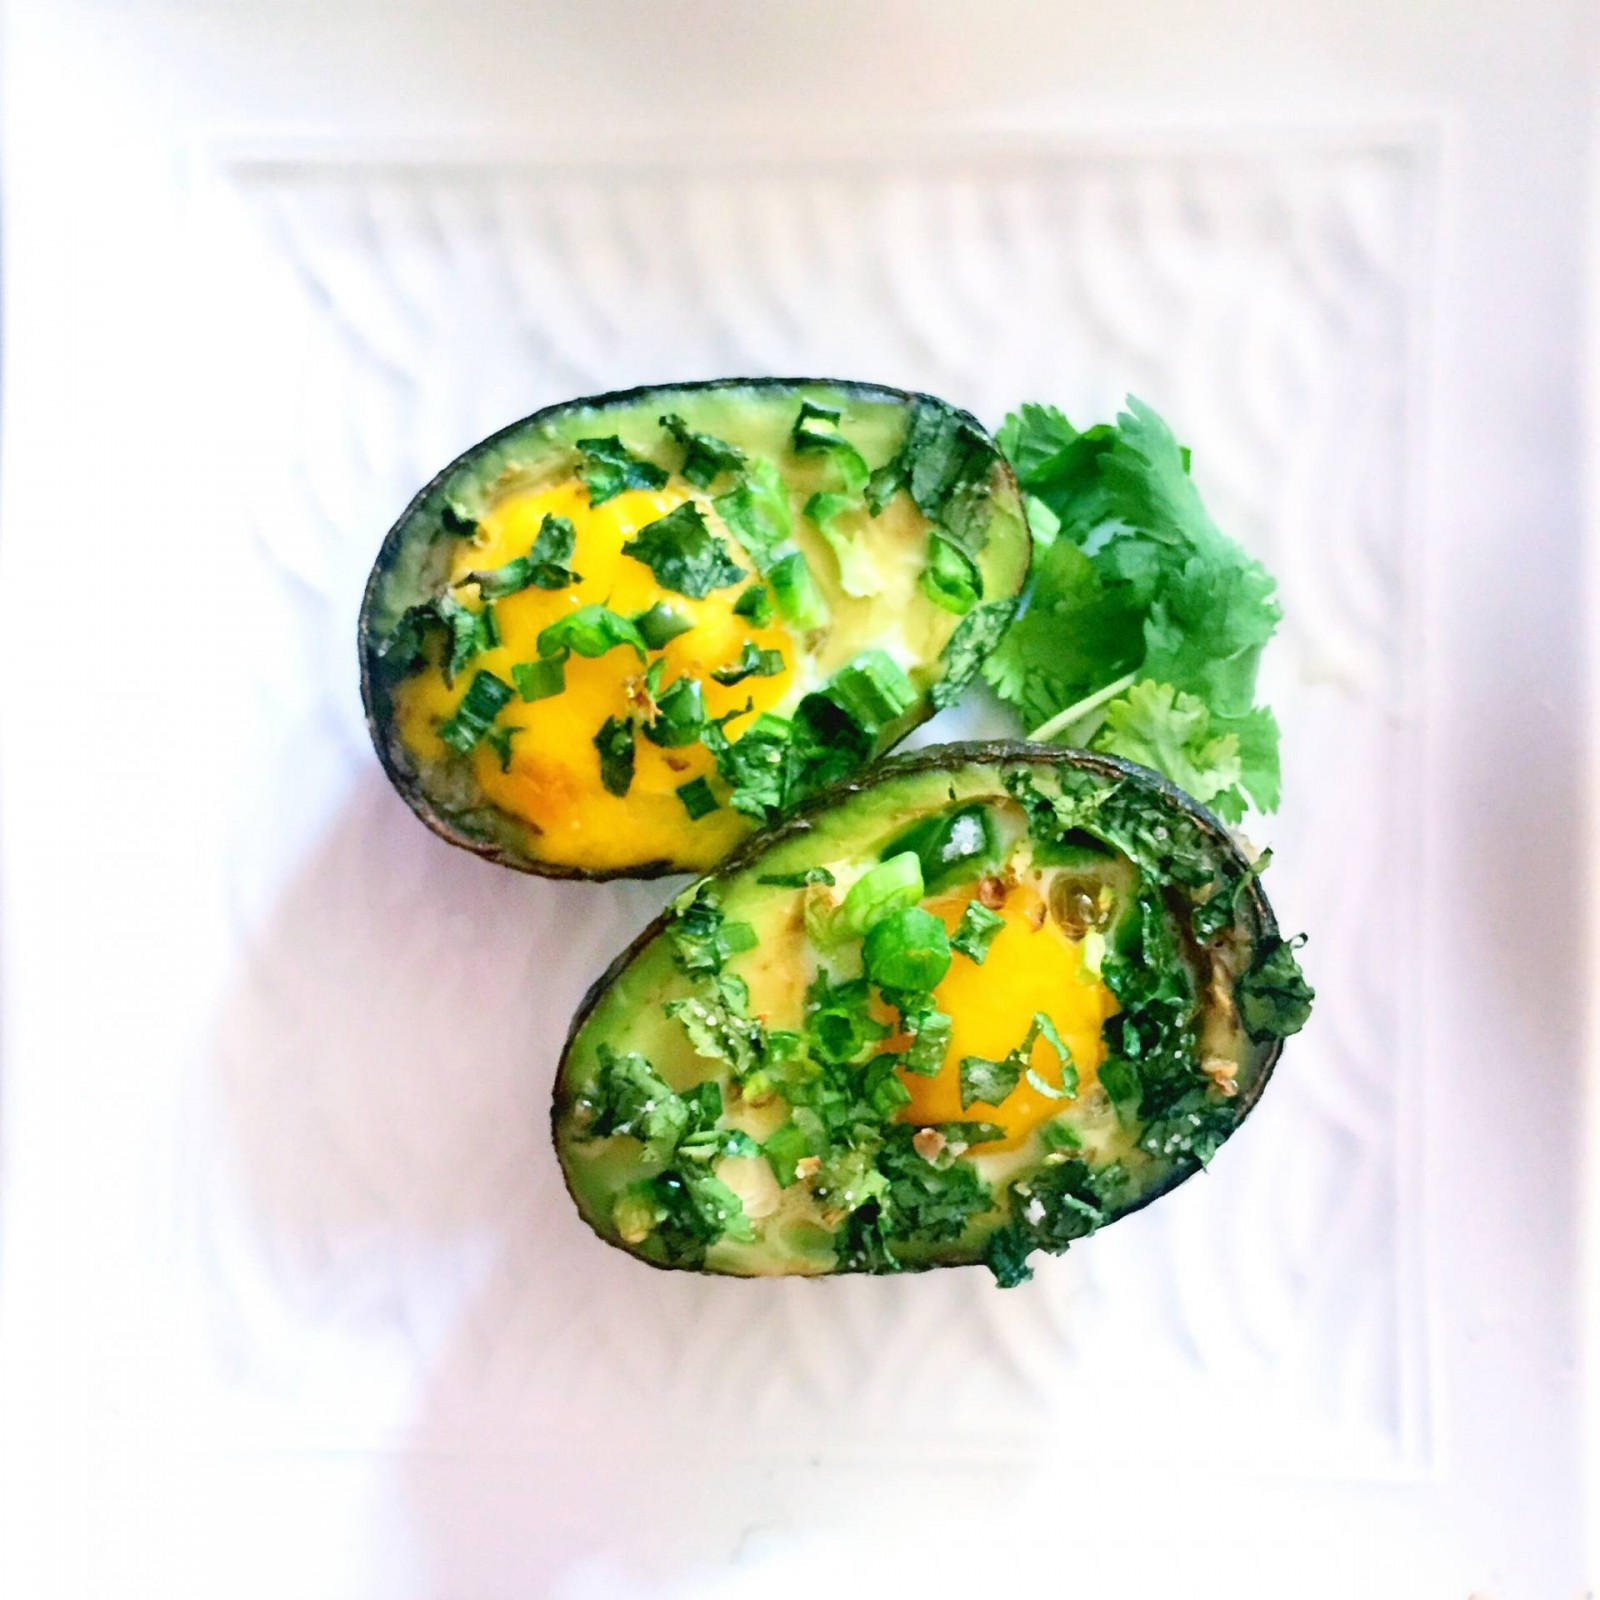 Weekend Recipe: Baked avocado stuffed with eggs